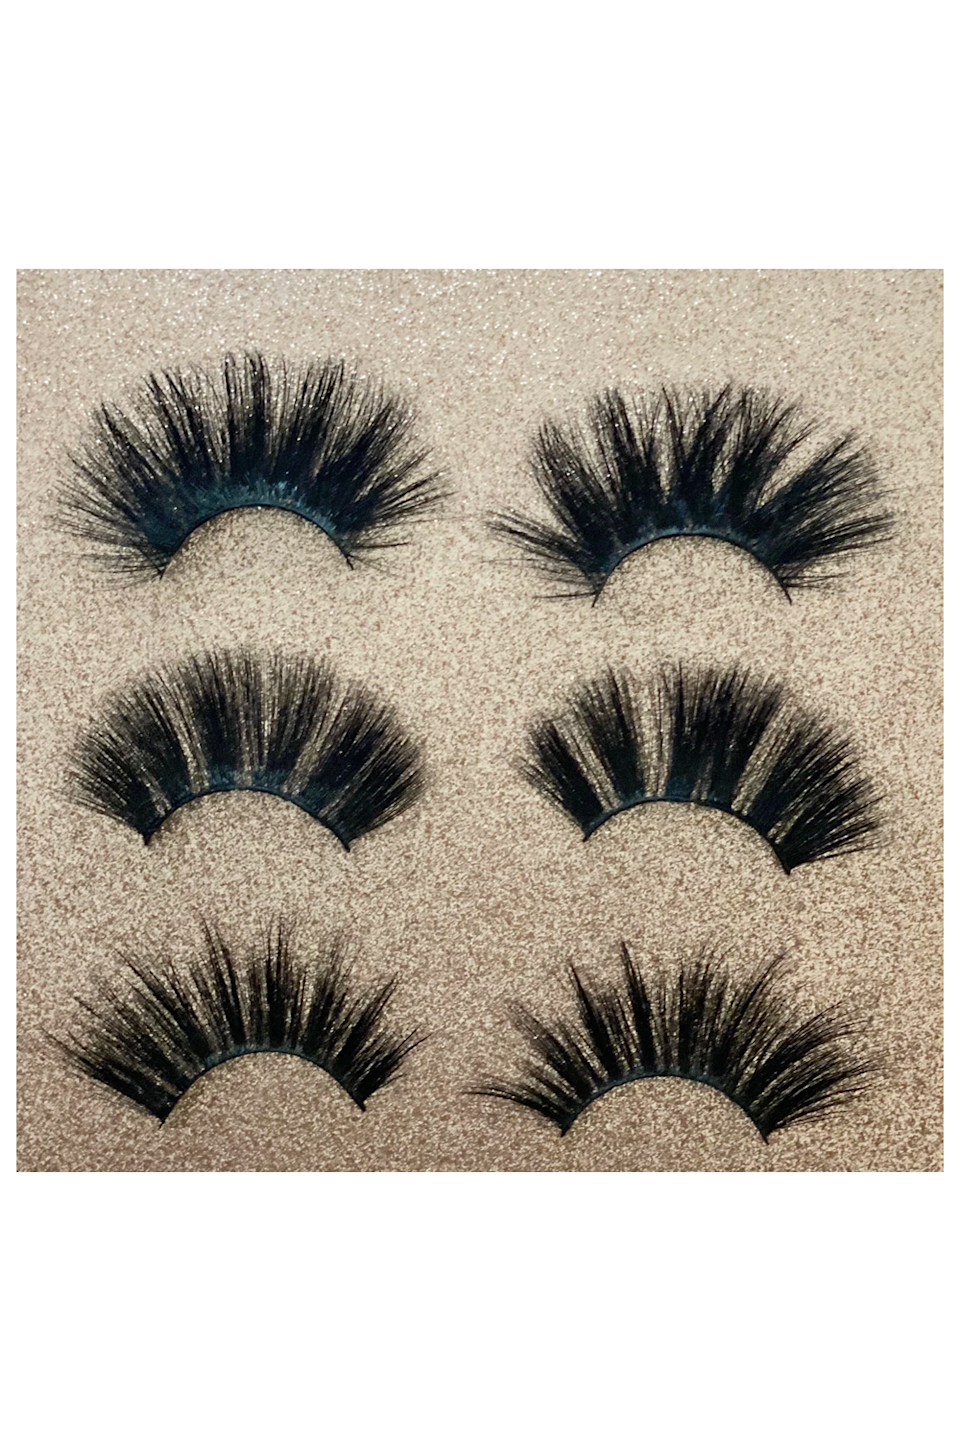 """<p>conniepowlashes.com</p><p><strong>$50.00</strong></p><p><a href=""""https://www.conniepowlashes.com/collections/boygirl-collection/products/boygirl-bundle"""" rel=""""nofollow noopener"""" target=""""_blank"""" data-ylk=""""slk:Shop Now"""" class=""""link rapid-noclick-resp"""">Shop Now</a></p><p>If you just want some majorly thick and long lashes for your costume (or for your basic night out), try this set from Connie Pow, which <strong>includes three fake lashes</strong>—the <a href=""""https://www.conniepowlashes.com/collections/boygirl-collection/products/b-rocket"""" rel=""""nofollow noopener"""" target=""""_blank"""" data-ylk=""""slk:B Rocket"""" class=""""link rapid-noclick-resp"""">B Rocket</a>,<a href=""""https://www.conniepowlashes.com/collections/boygirl-collection/products/ill-nana"""" rel=""""nofollow noopener"""" target=""""_blank"""" data-ylk=""""slk:Ill Nana"""" class=""""link rapid-noclick-resp""""> Ill Nana</a>, and <a href=""""https://www.conniepowlashes.com/collections/boygirl-collection/products/janaya"""" rel=""""nofollow noopener"""" target=""""_blank"""" data-ylk=""""slk:Janaya"""" class=""""link rapid-noclick-resp"""">Janaya</a>—to really amp up any <a href=""""https://www.cosmopolitan.com/style-beauty/beauty/g32998938/halloween-eye-makeup-looks/"""" rel=""""nofollow noopener"""" target=""""_blank"""" data-ylk=""""slk:Halloween eye makeup"""" class=""""link rapid-noclick-resp"""">Halloween eye makeup</a>.</p>"""